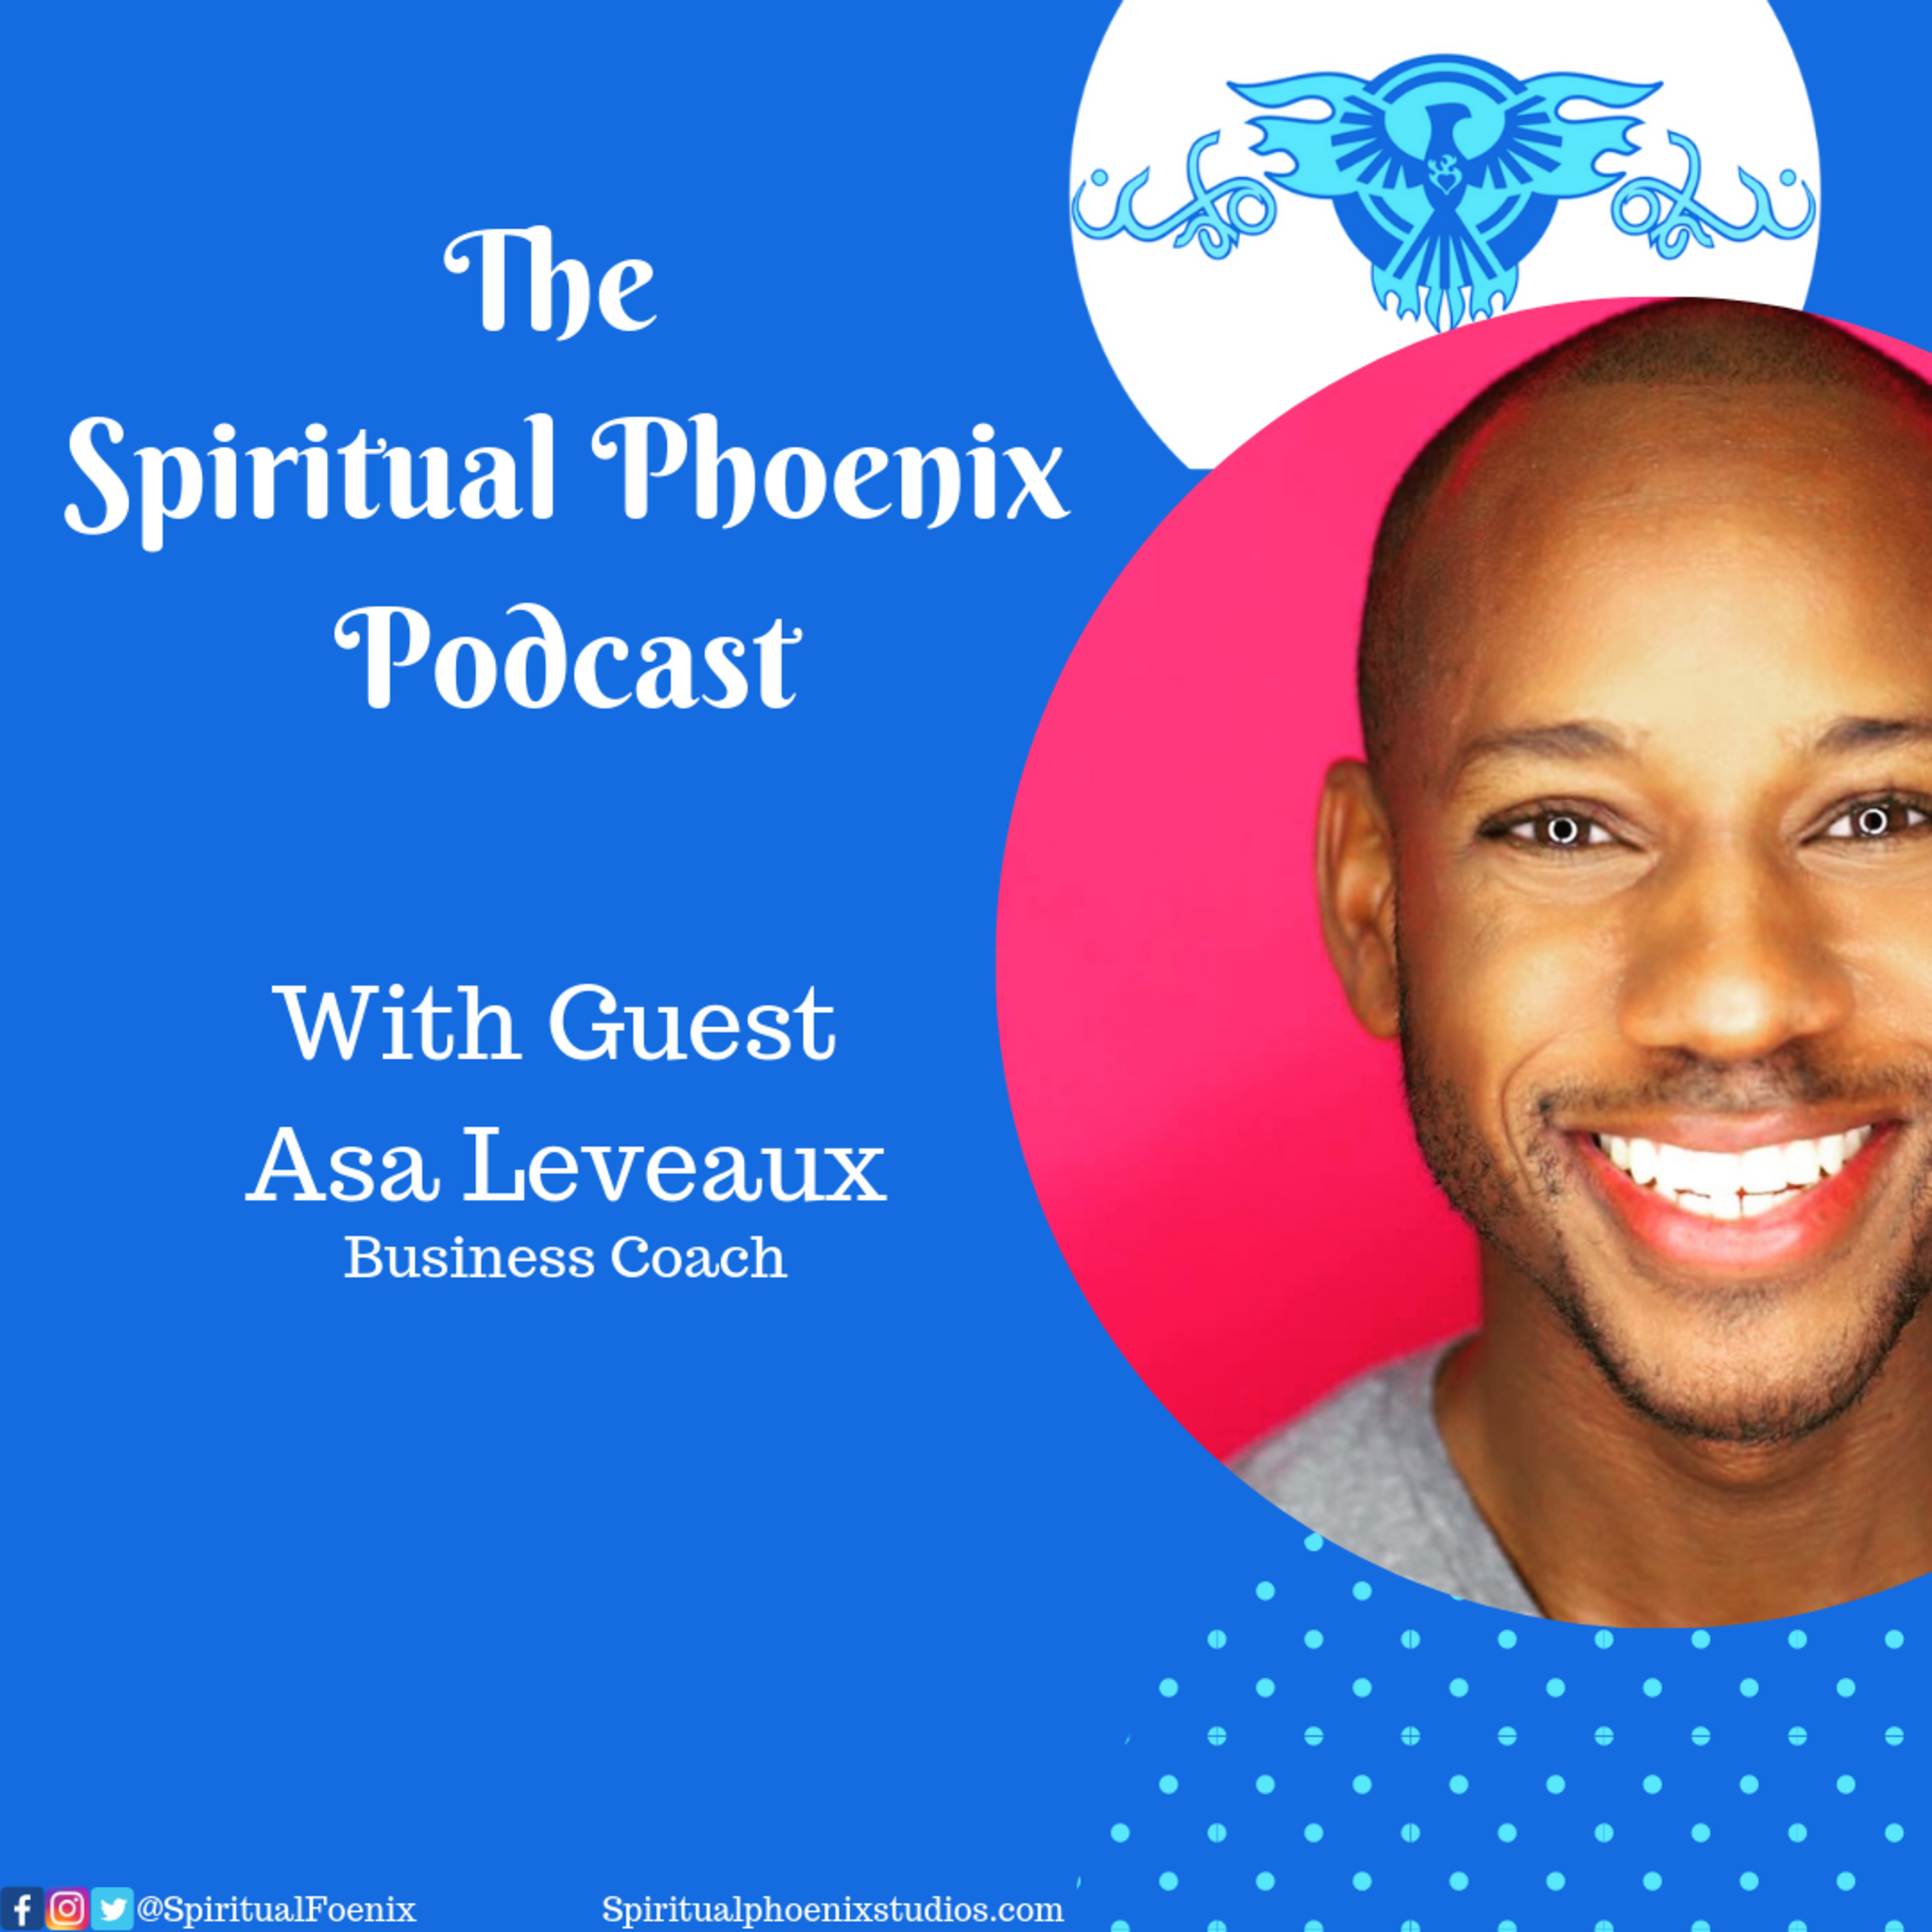 Learn Asa Leveaux's Sensational Secrets to Building Booming Business and Spiritual Success.